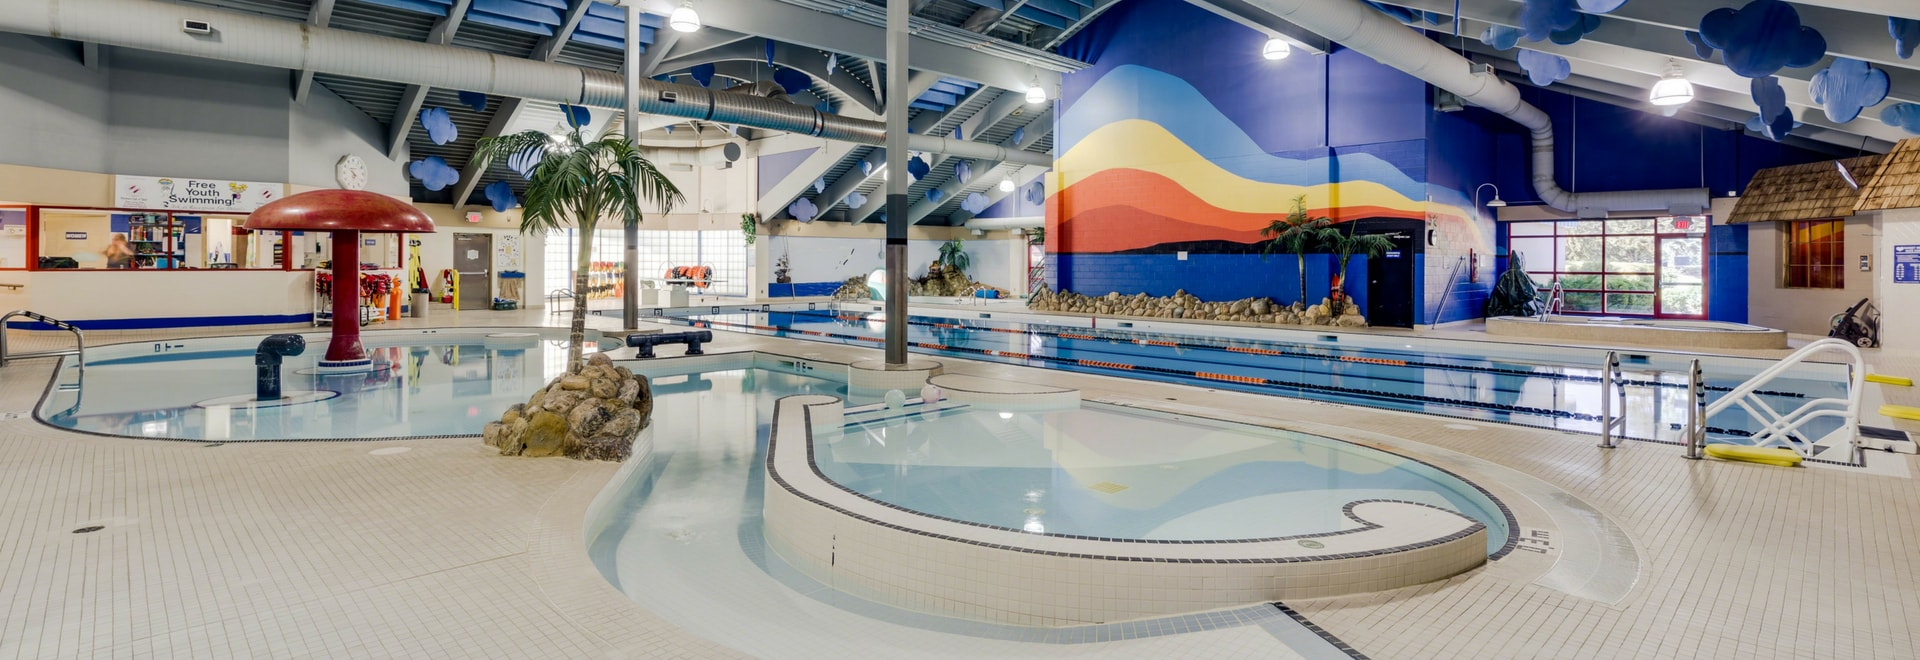 Aquafun Centre Inside